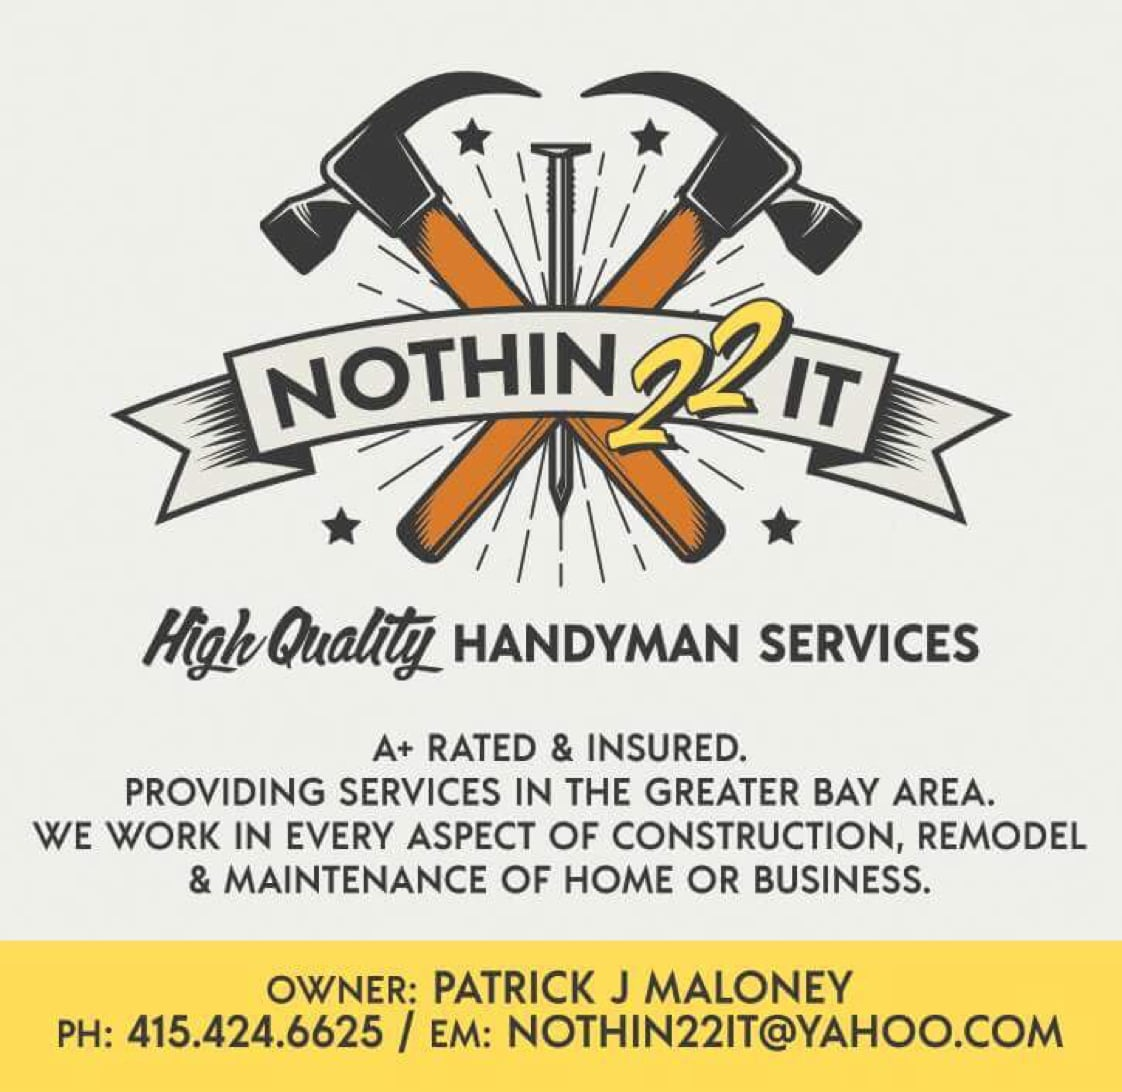 Nothin22it Handyman Service Patrick Joseph Maloney